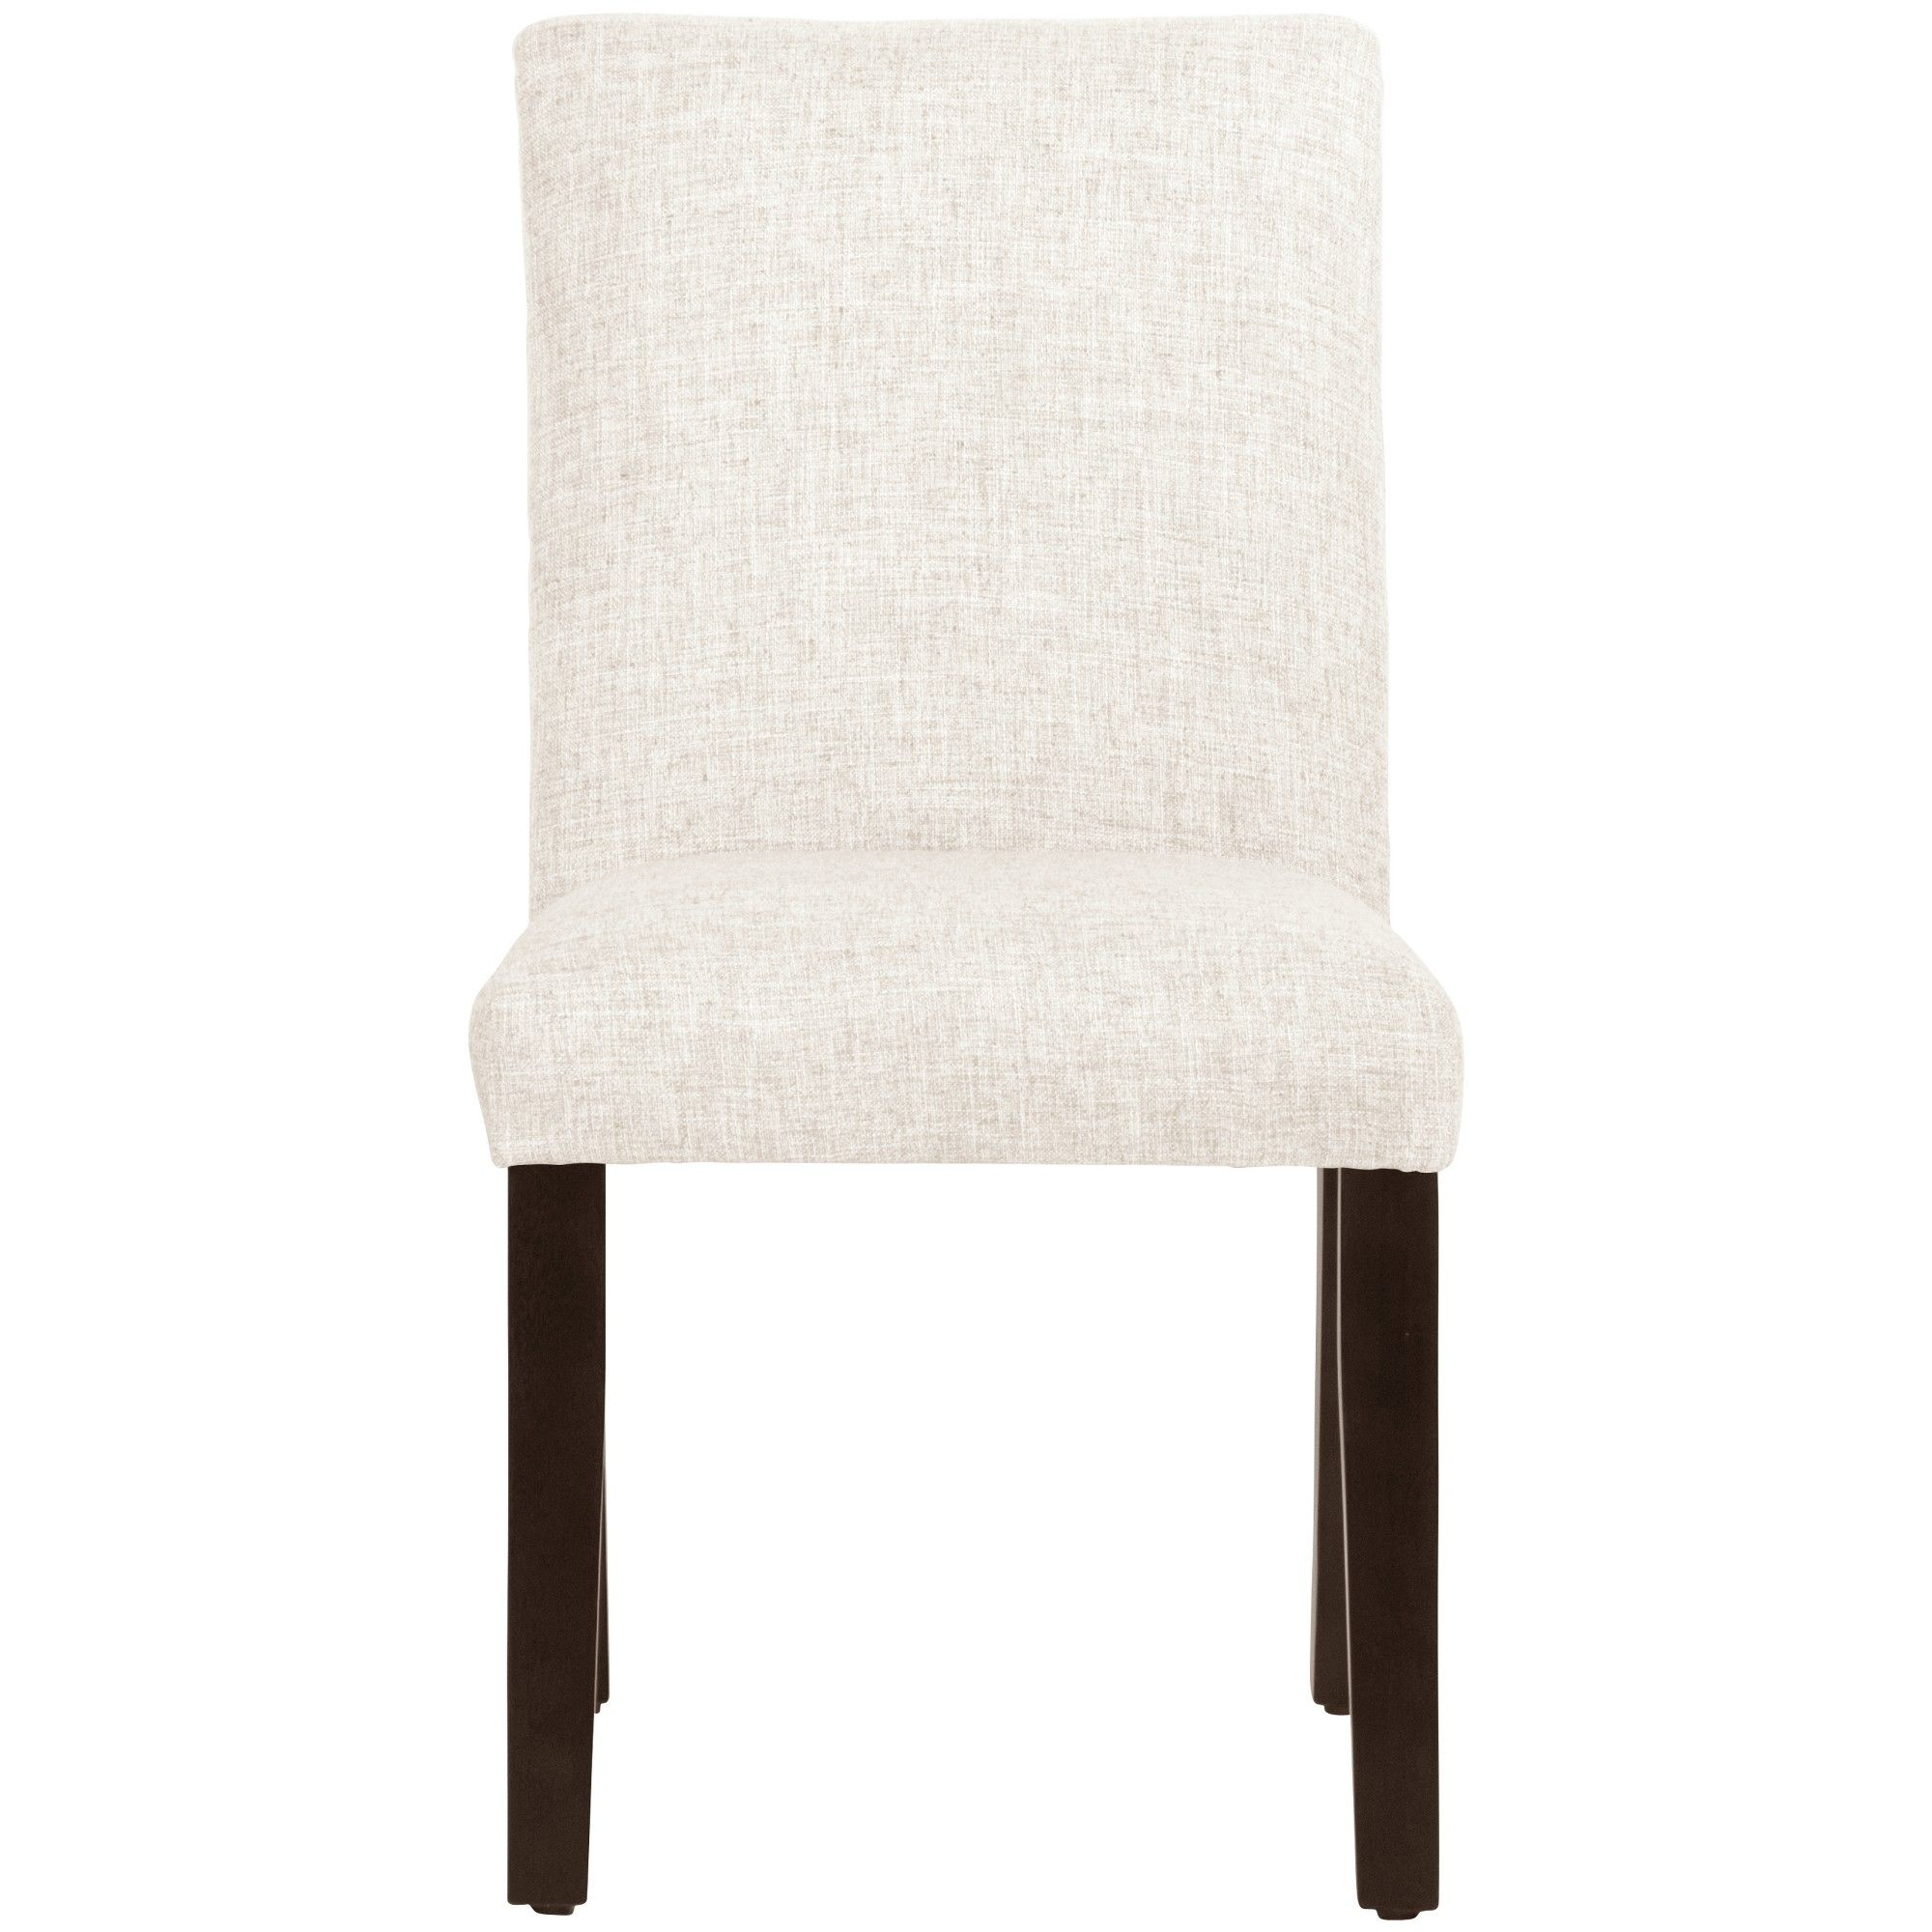 Parsons Dining Chair Off White Linen Threshold Adult Unisex